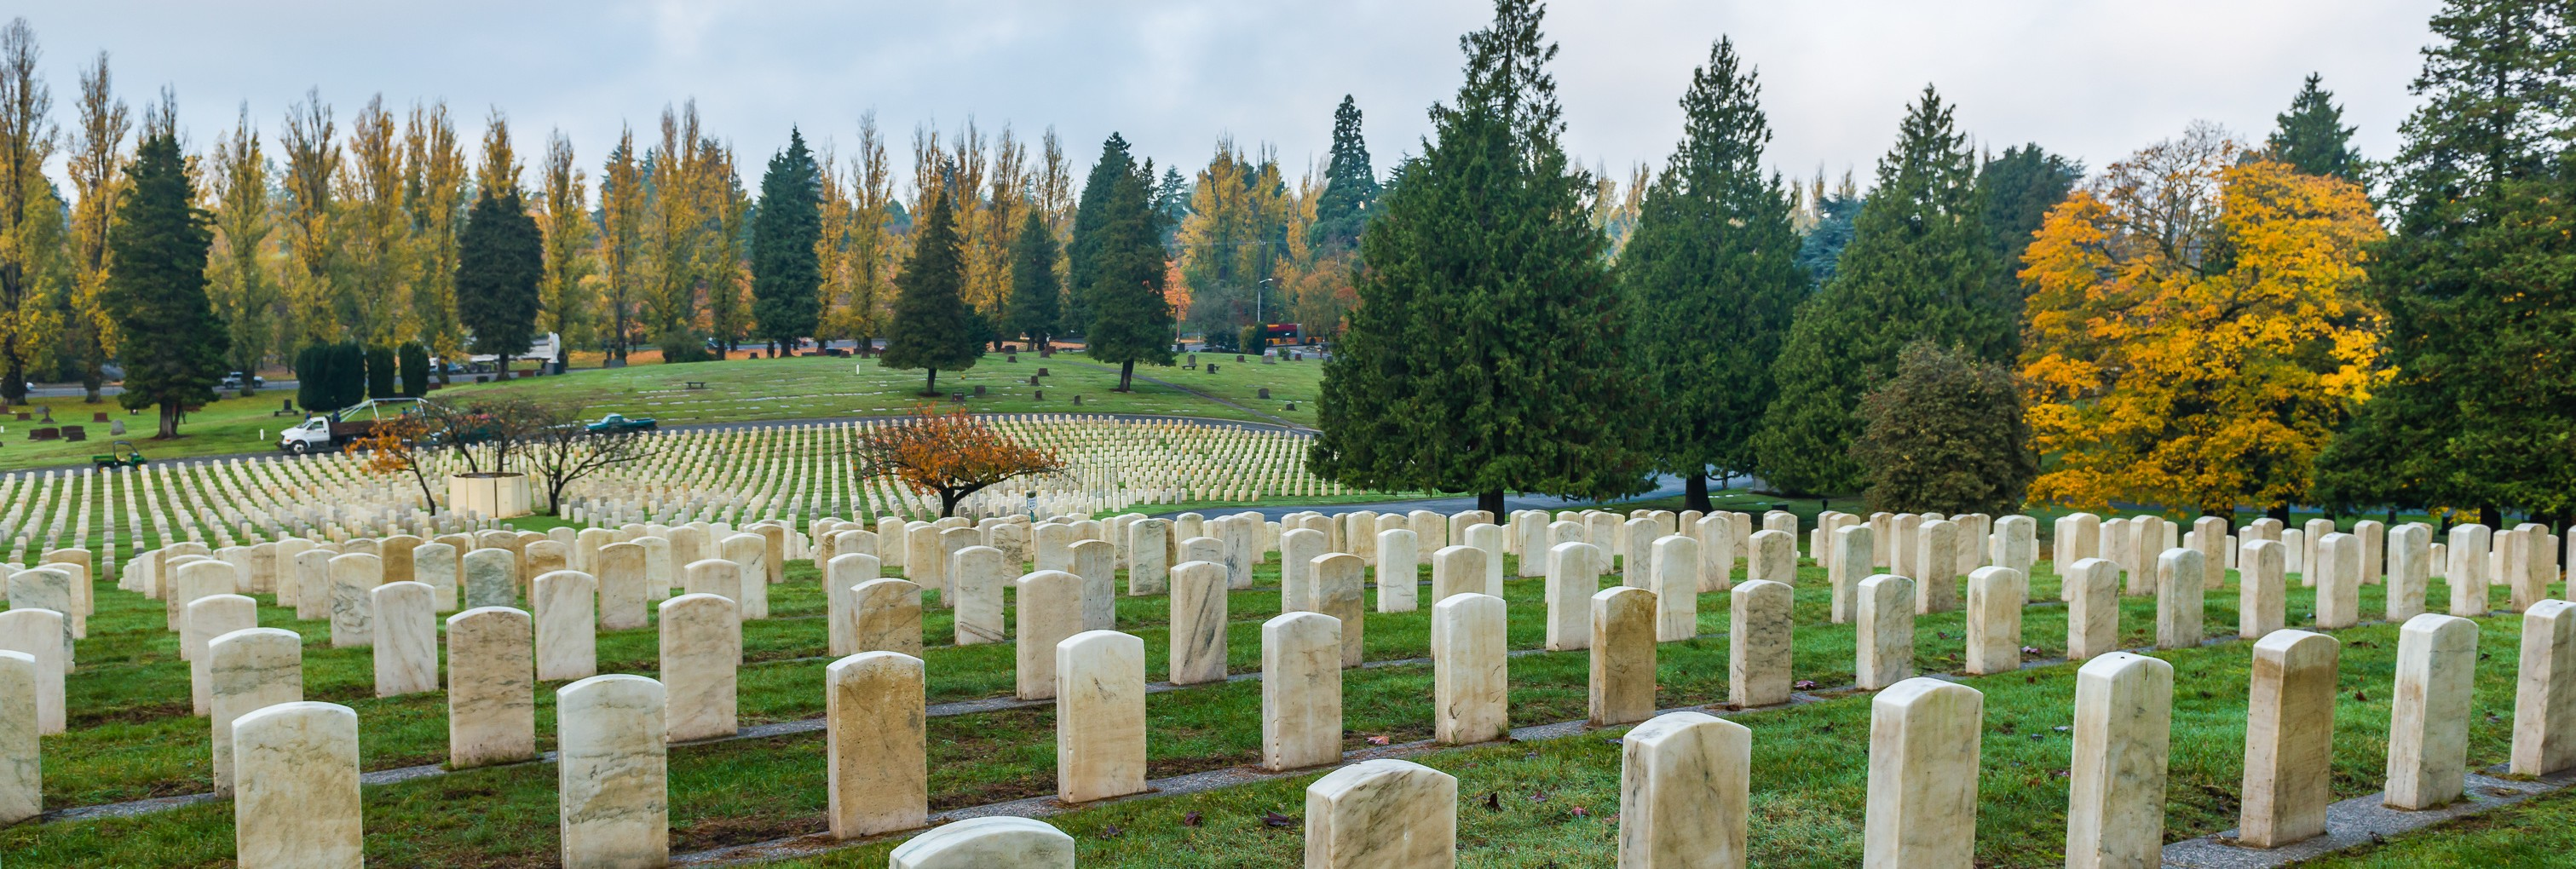 Rows of neatly arranged marble grave markers in a wooded cemetery.